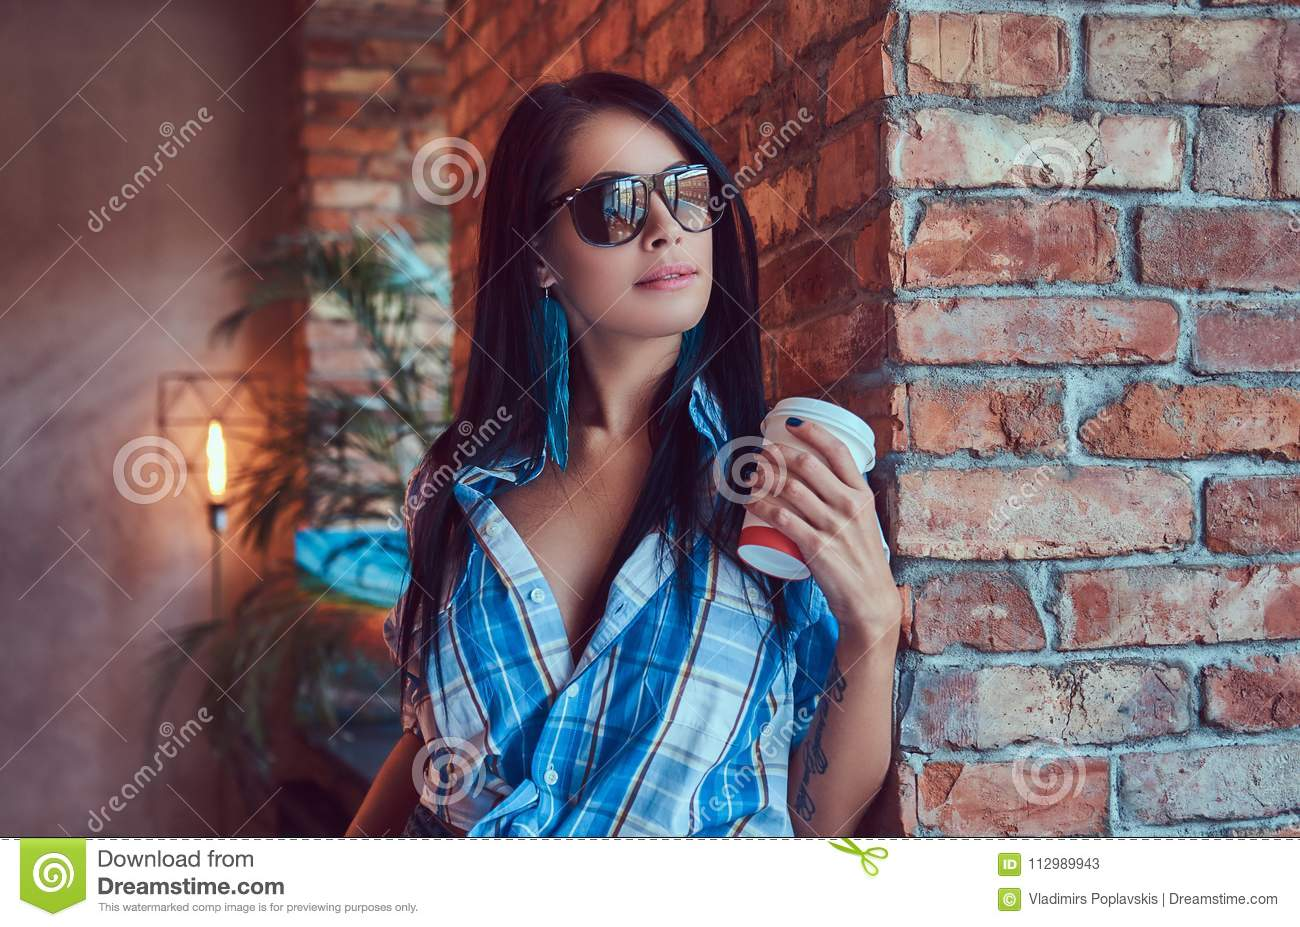 A happy brunette in flannel shirt and sunglasses holds a cup of coffee posing against a brick wall.